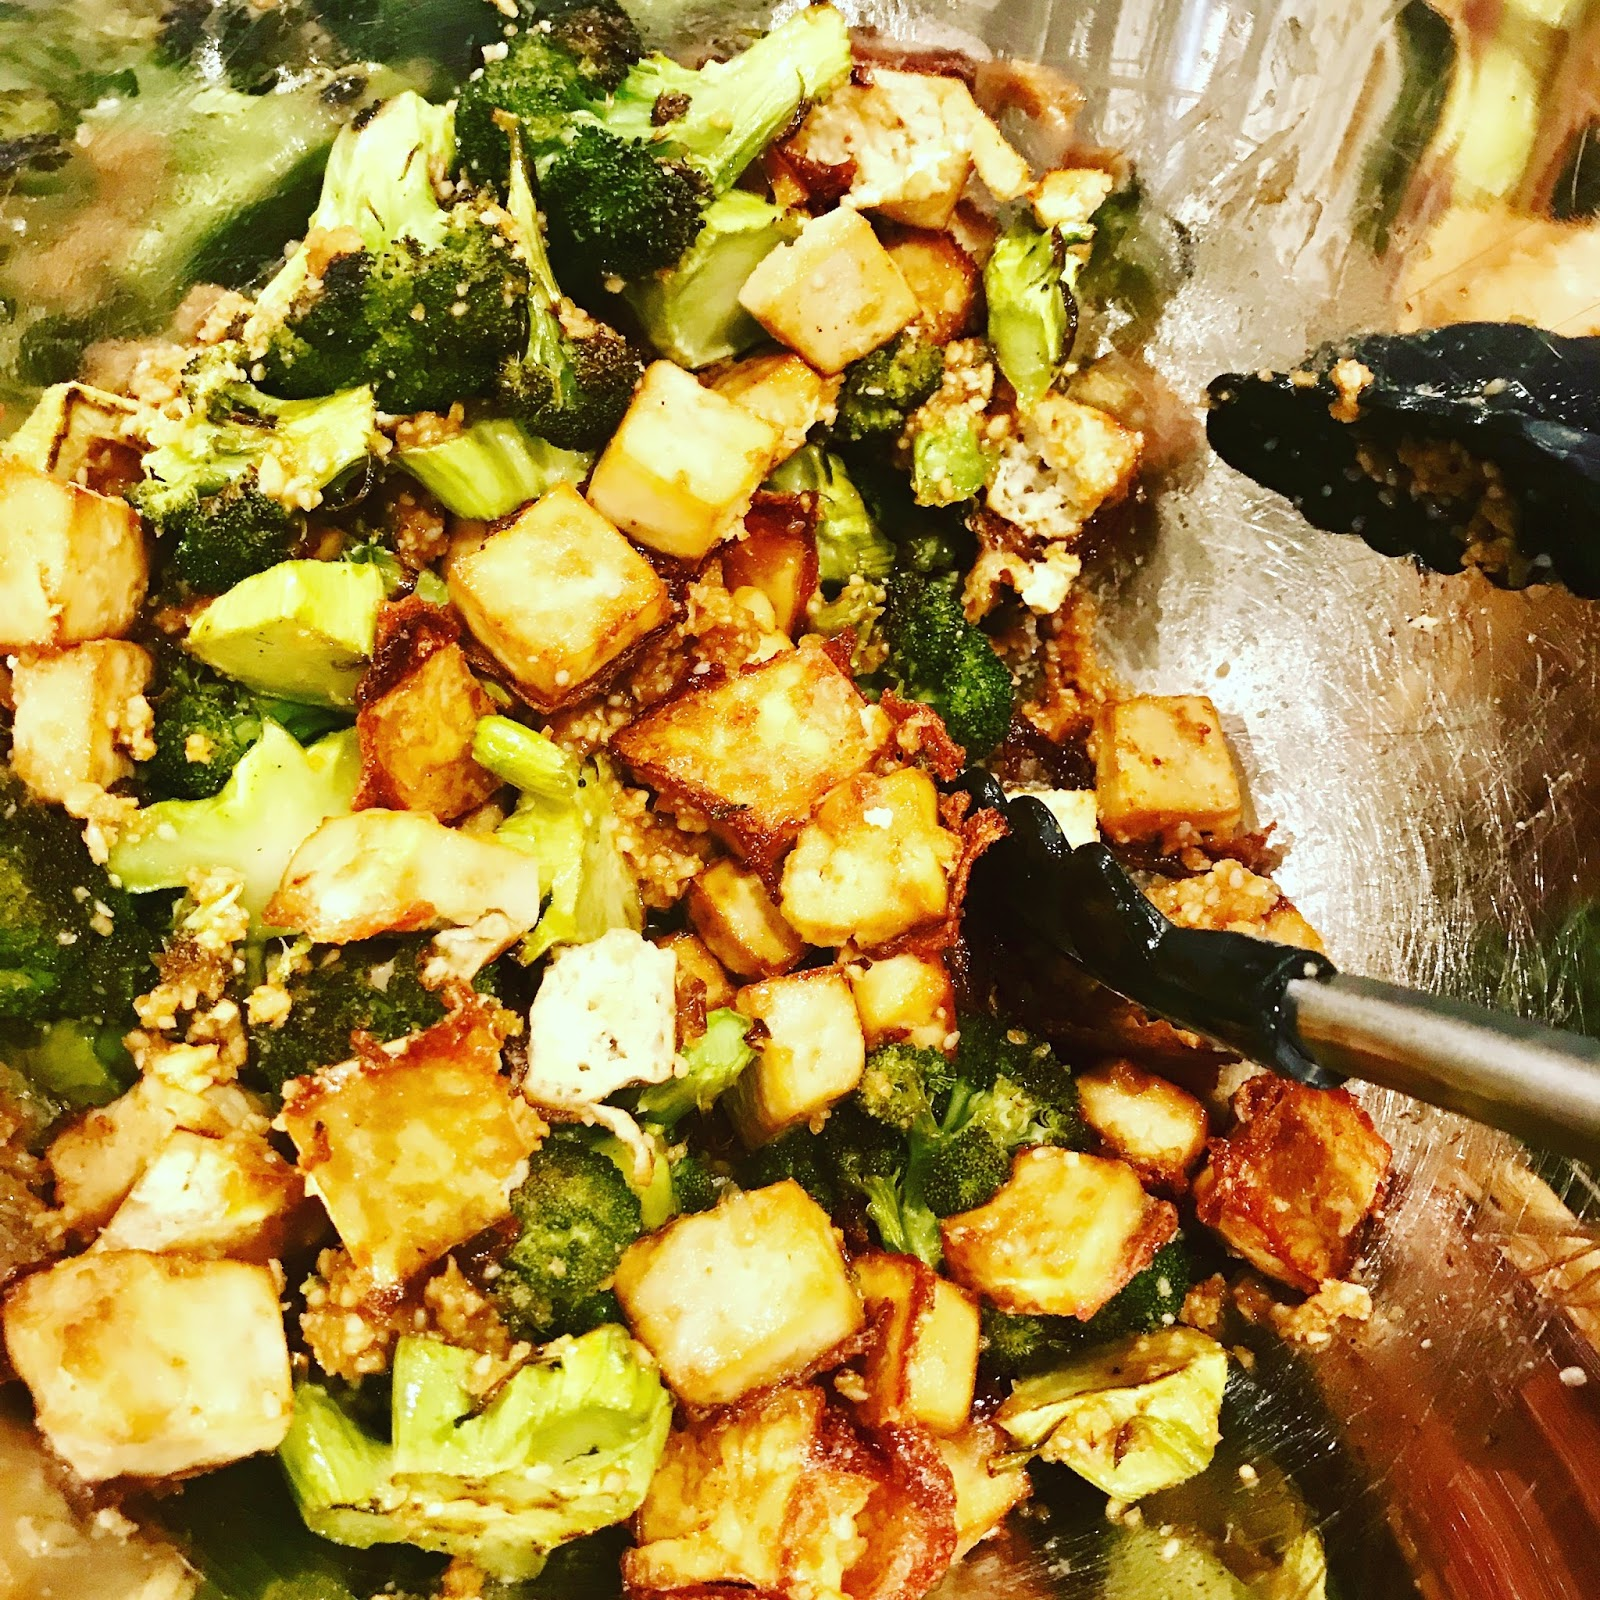 Crispy Tofu And Broccoli With Peanut Pesto What S For Dinner Food